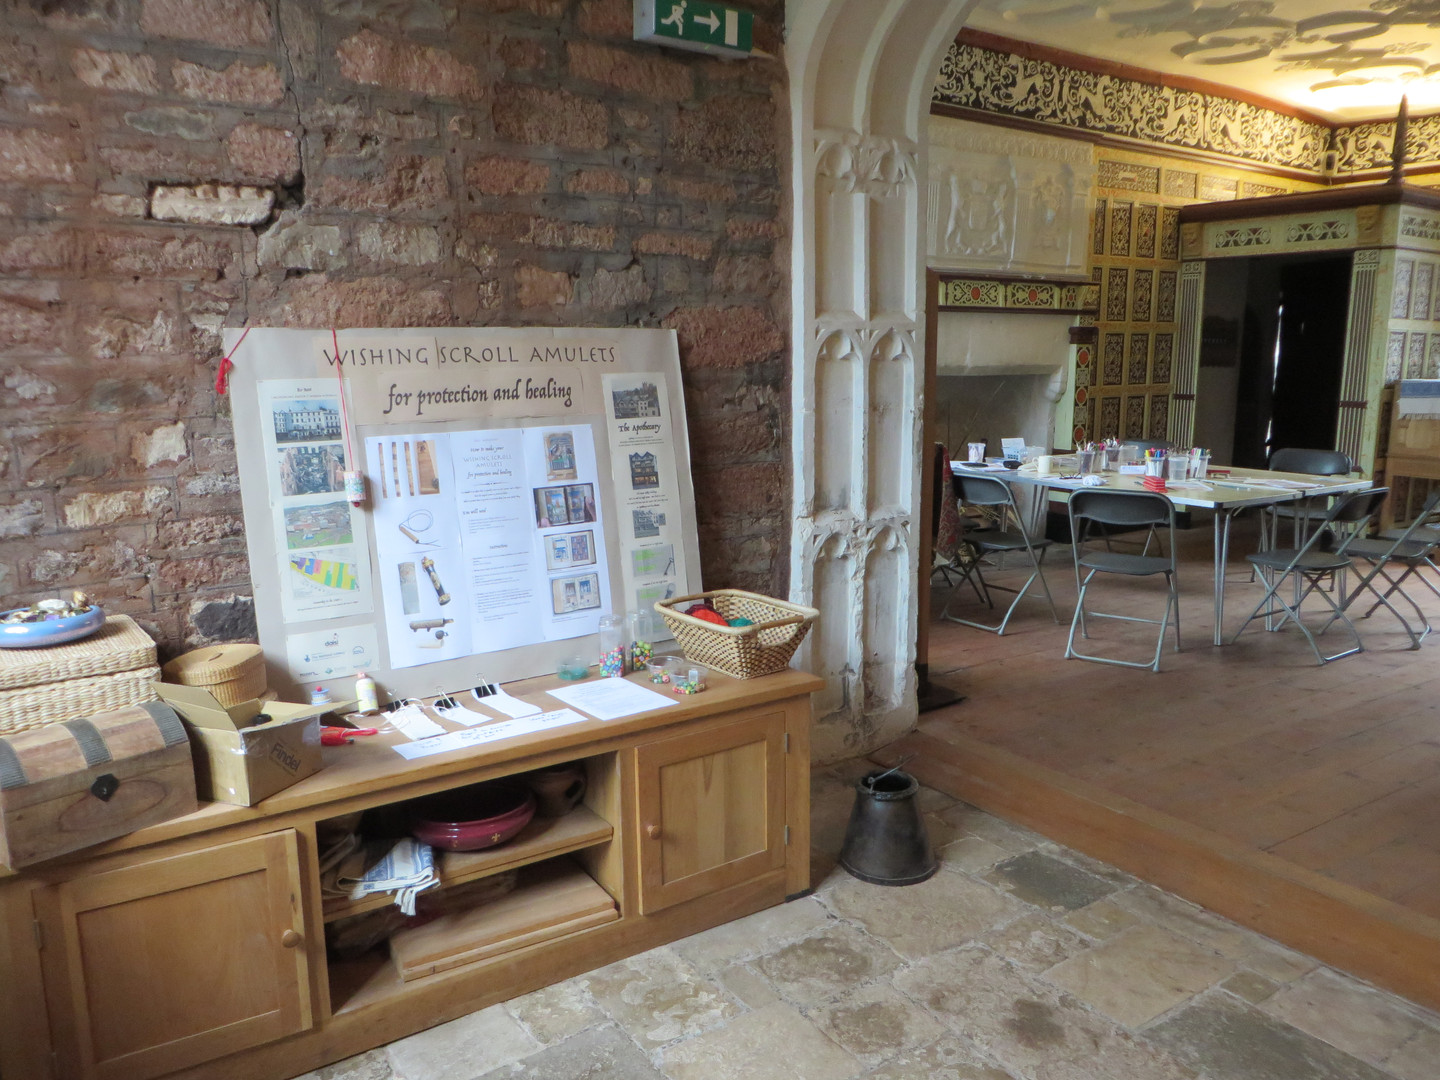 Re-Boot Drop-in Family Workshop at St Nicholas Priory